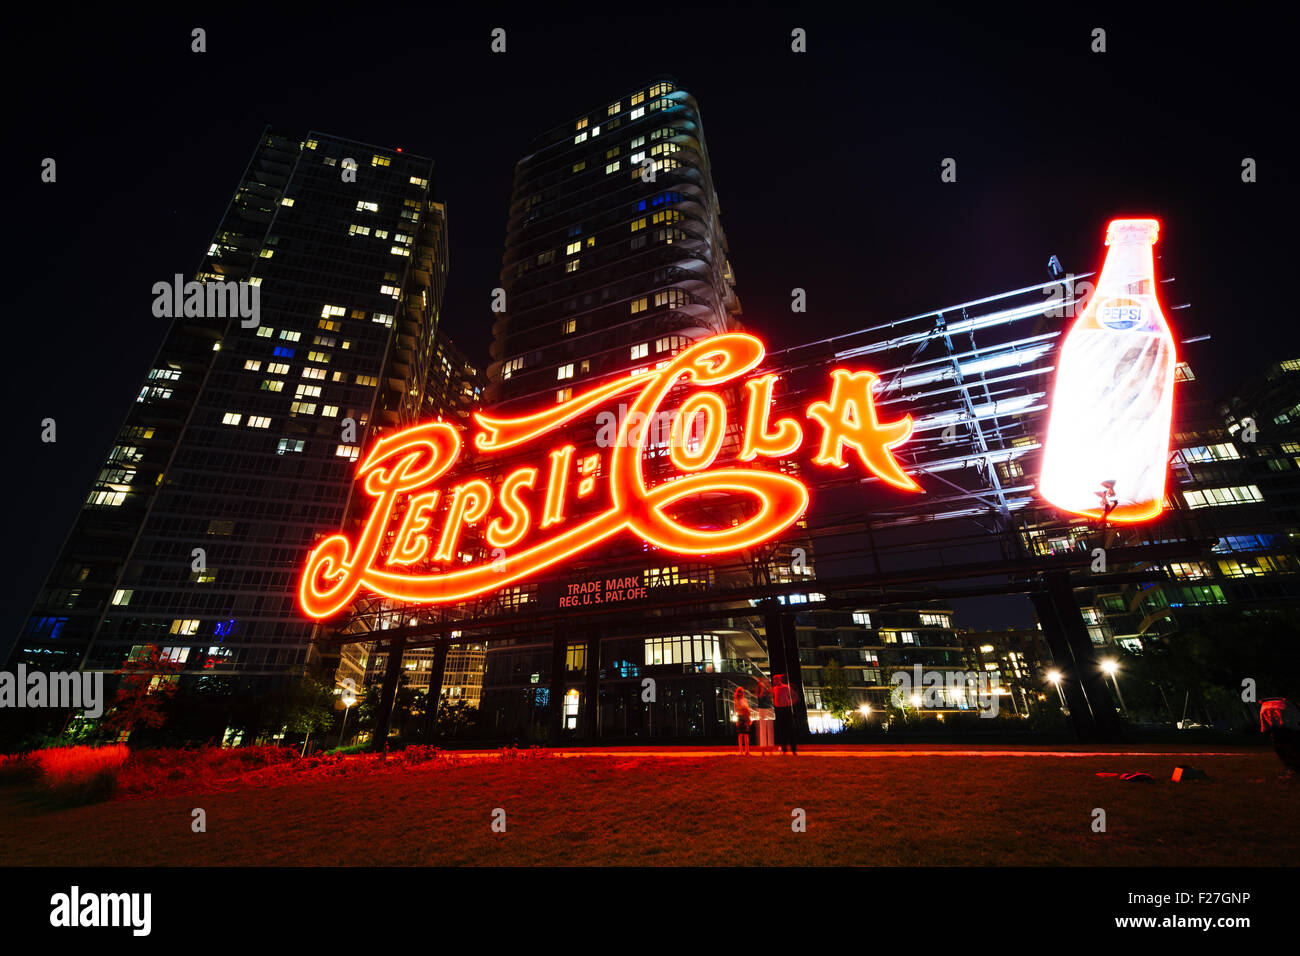 The Pepsi-Cola sign at night, in Long Island City, Queens, New York. Stock Photo